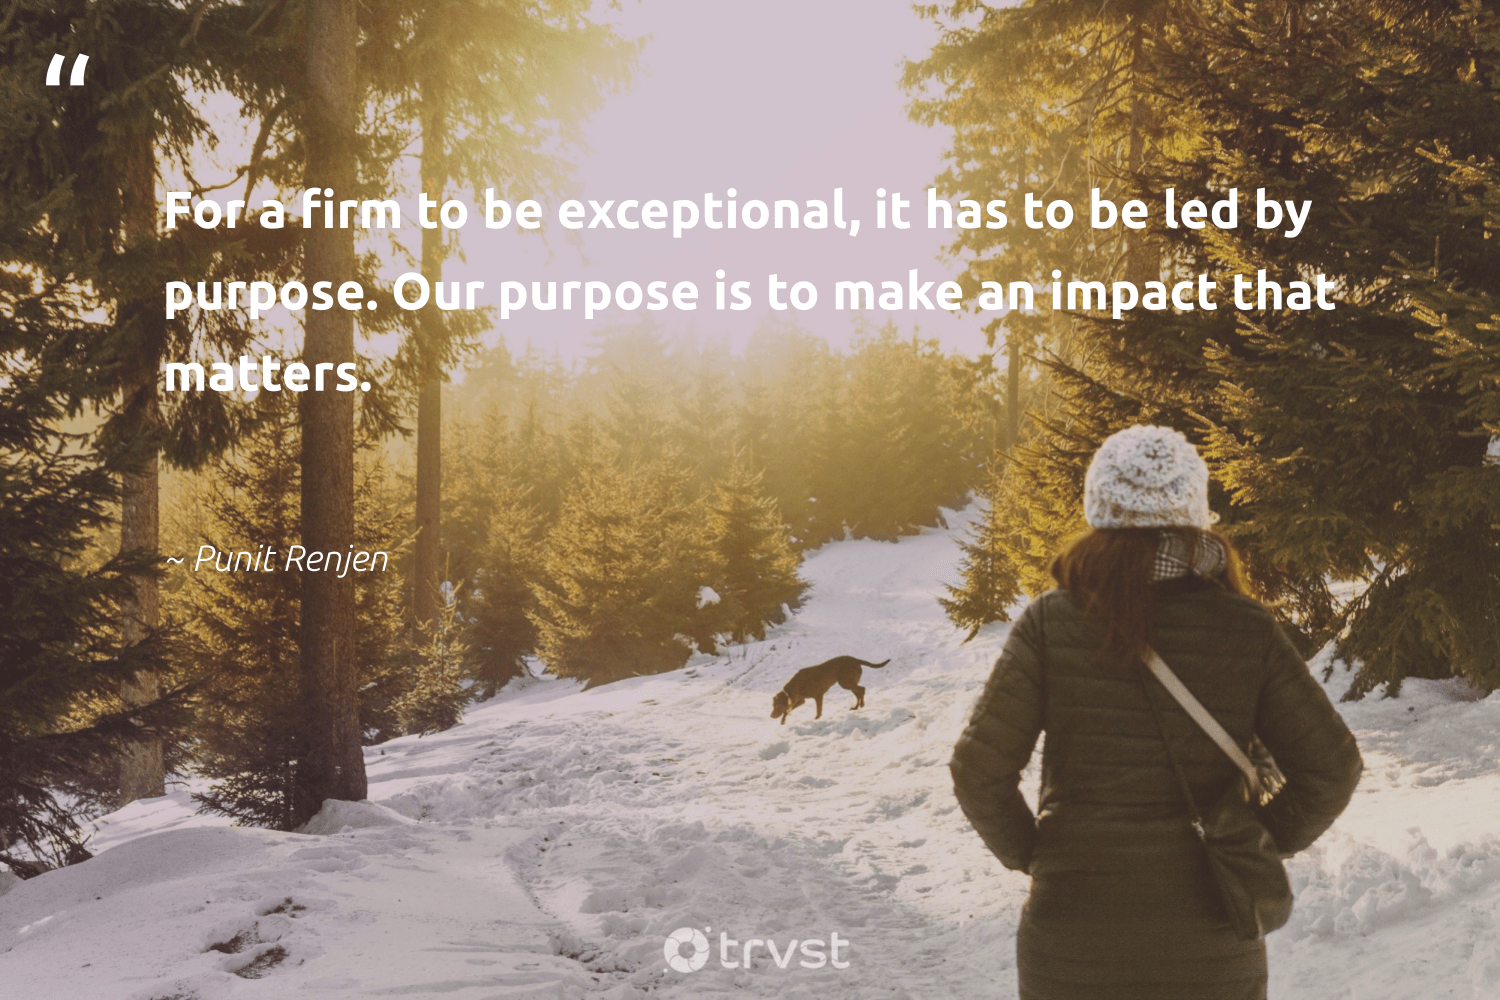 """For a firm to be exceptional, it has to be led by purpose. Our purpose is to make an impact that matters.""  - Punit Renjen #trvst #quotes #impact #purpose #findingpupose #betterplanet #begreat #dosomething #findpurpose #socialchange #mindset #dogood"